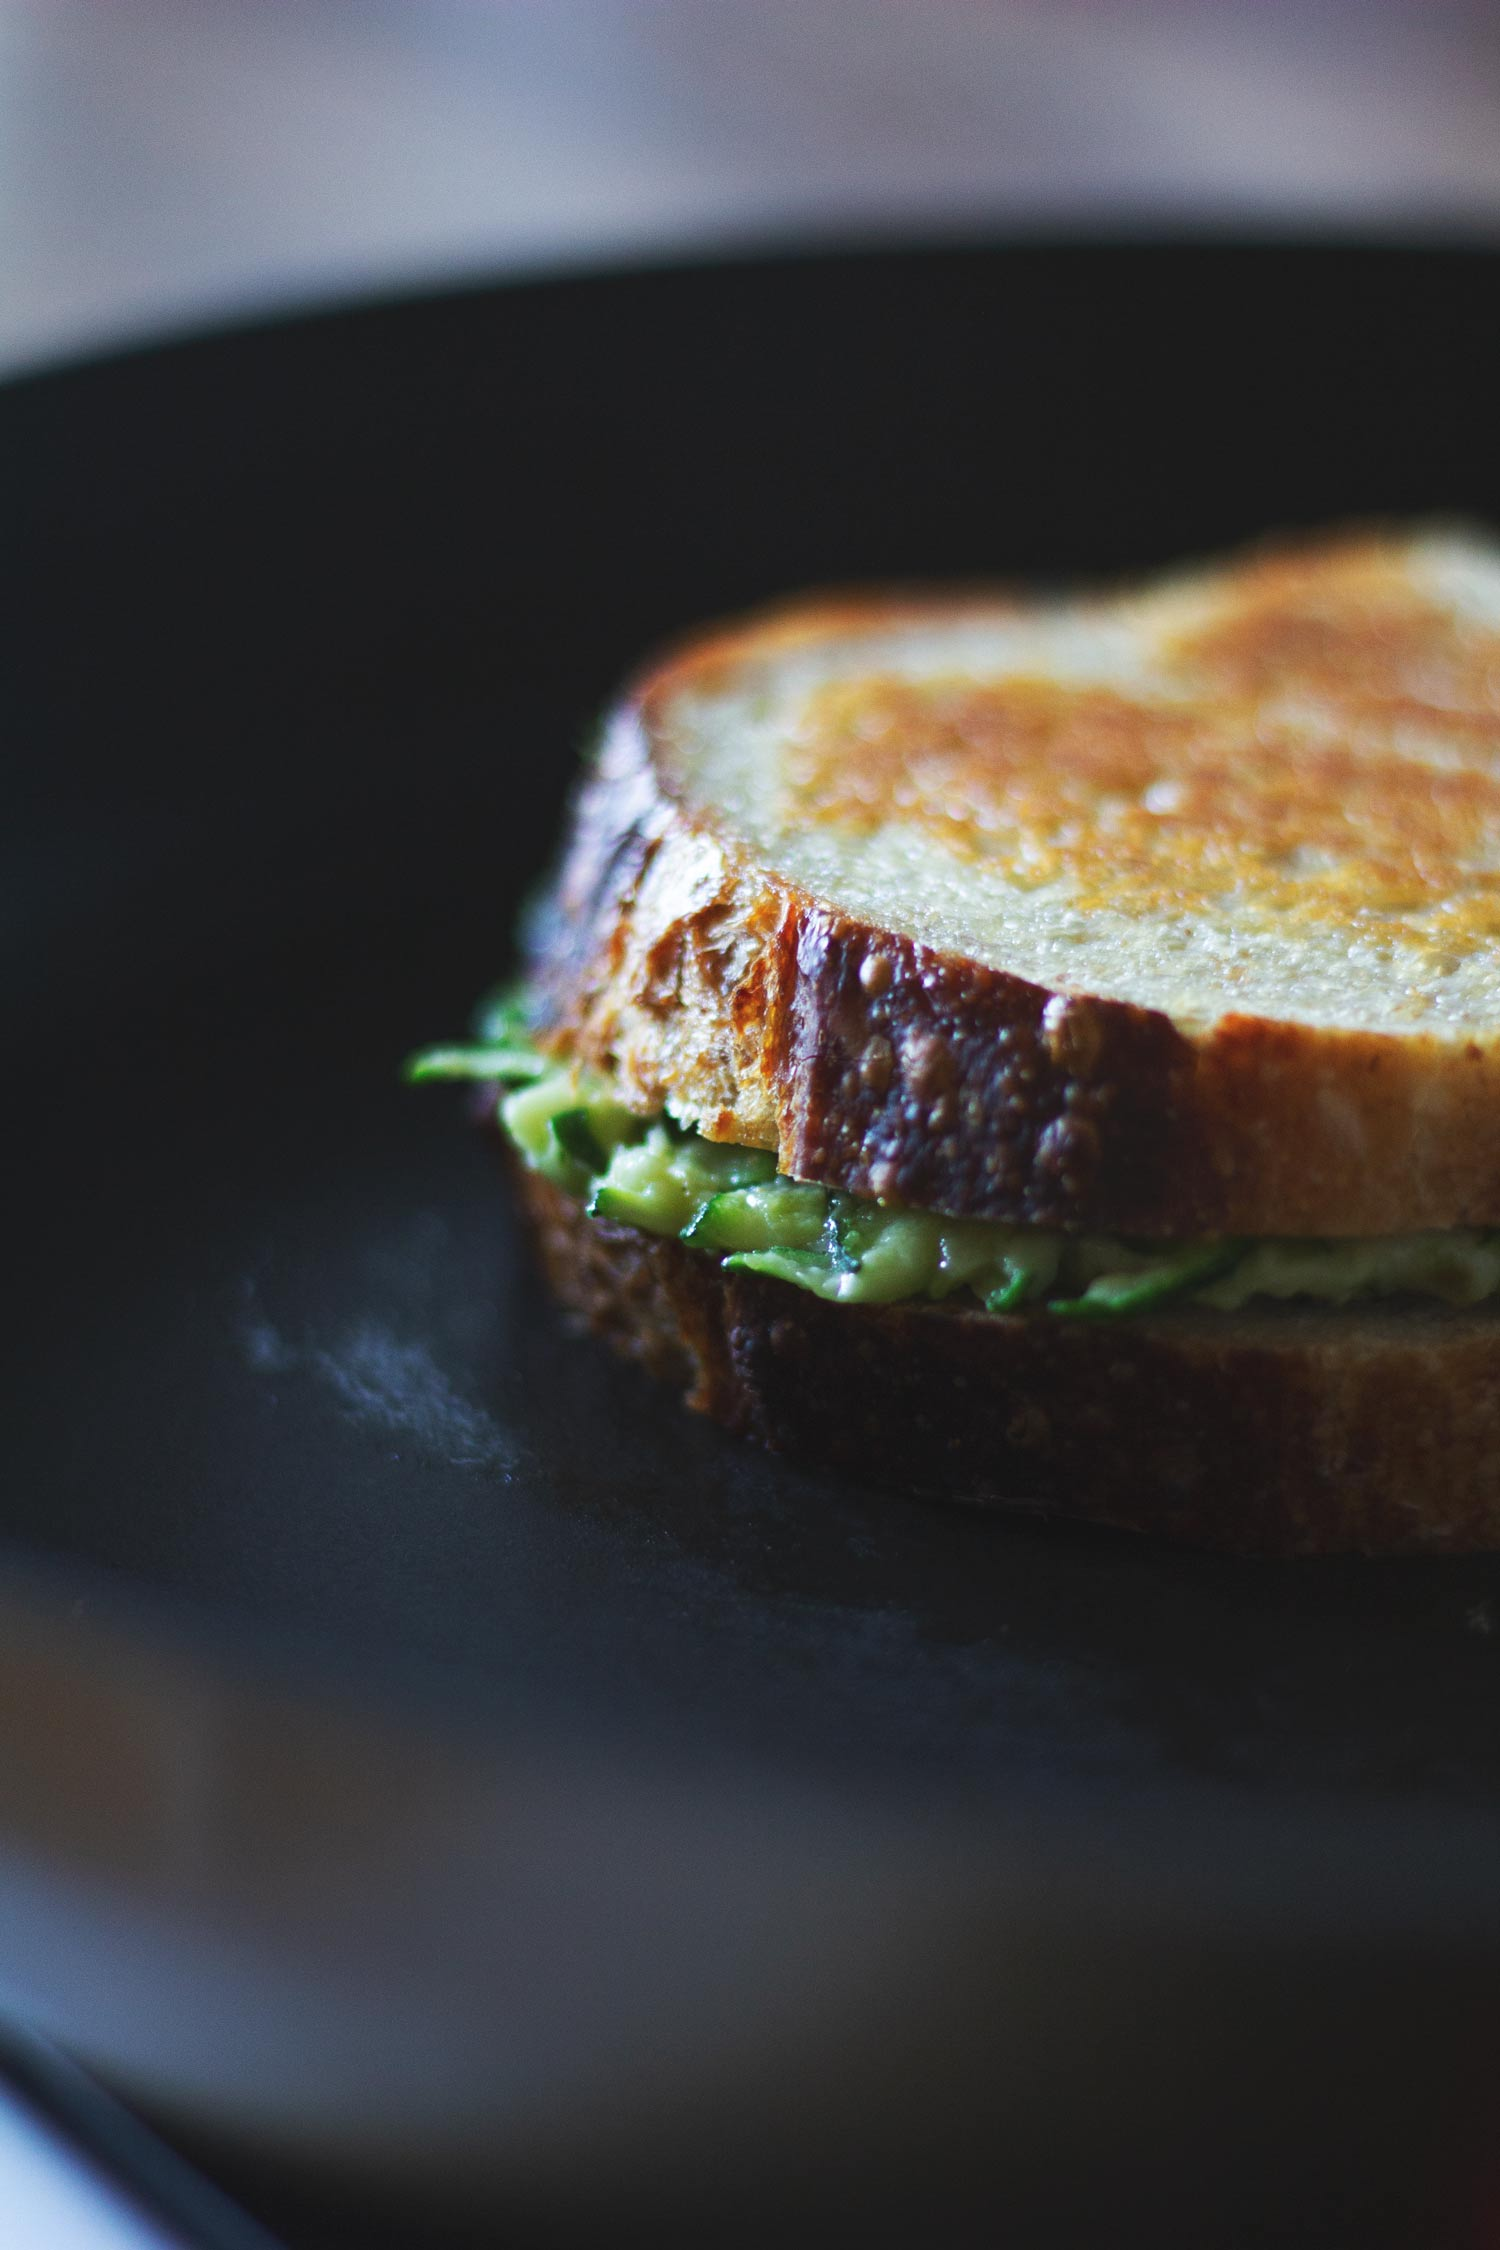 Courgette grilled cheese being toasted in a frying pan